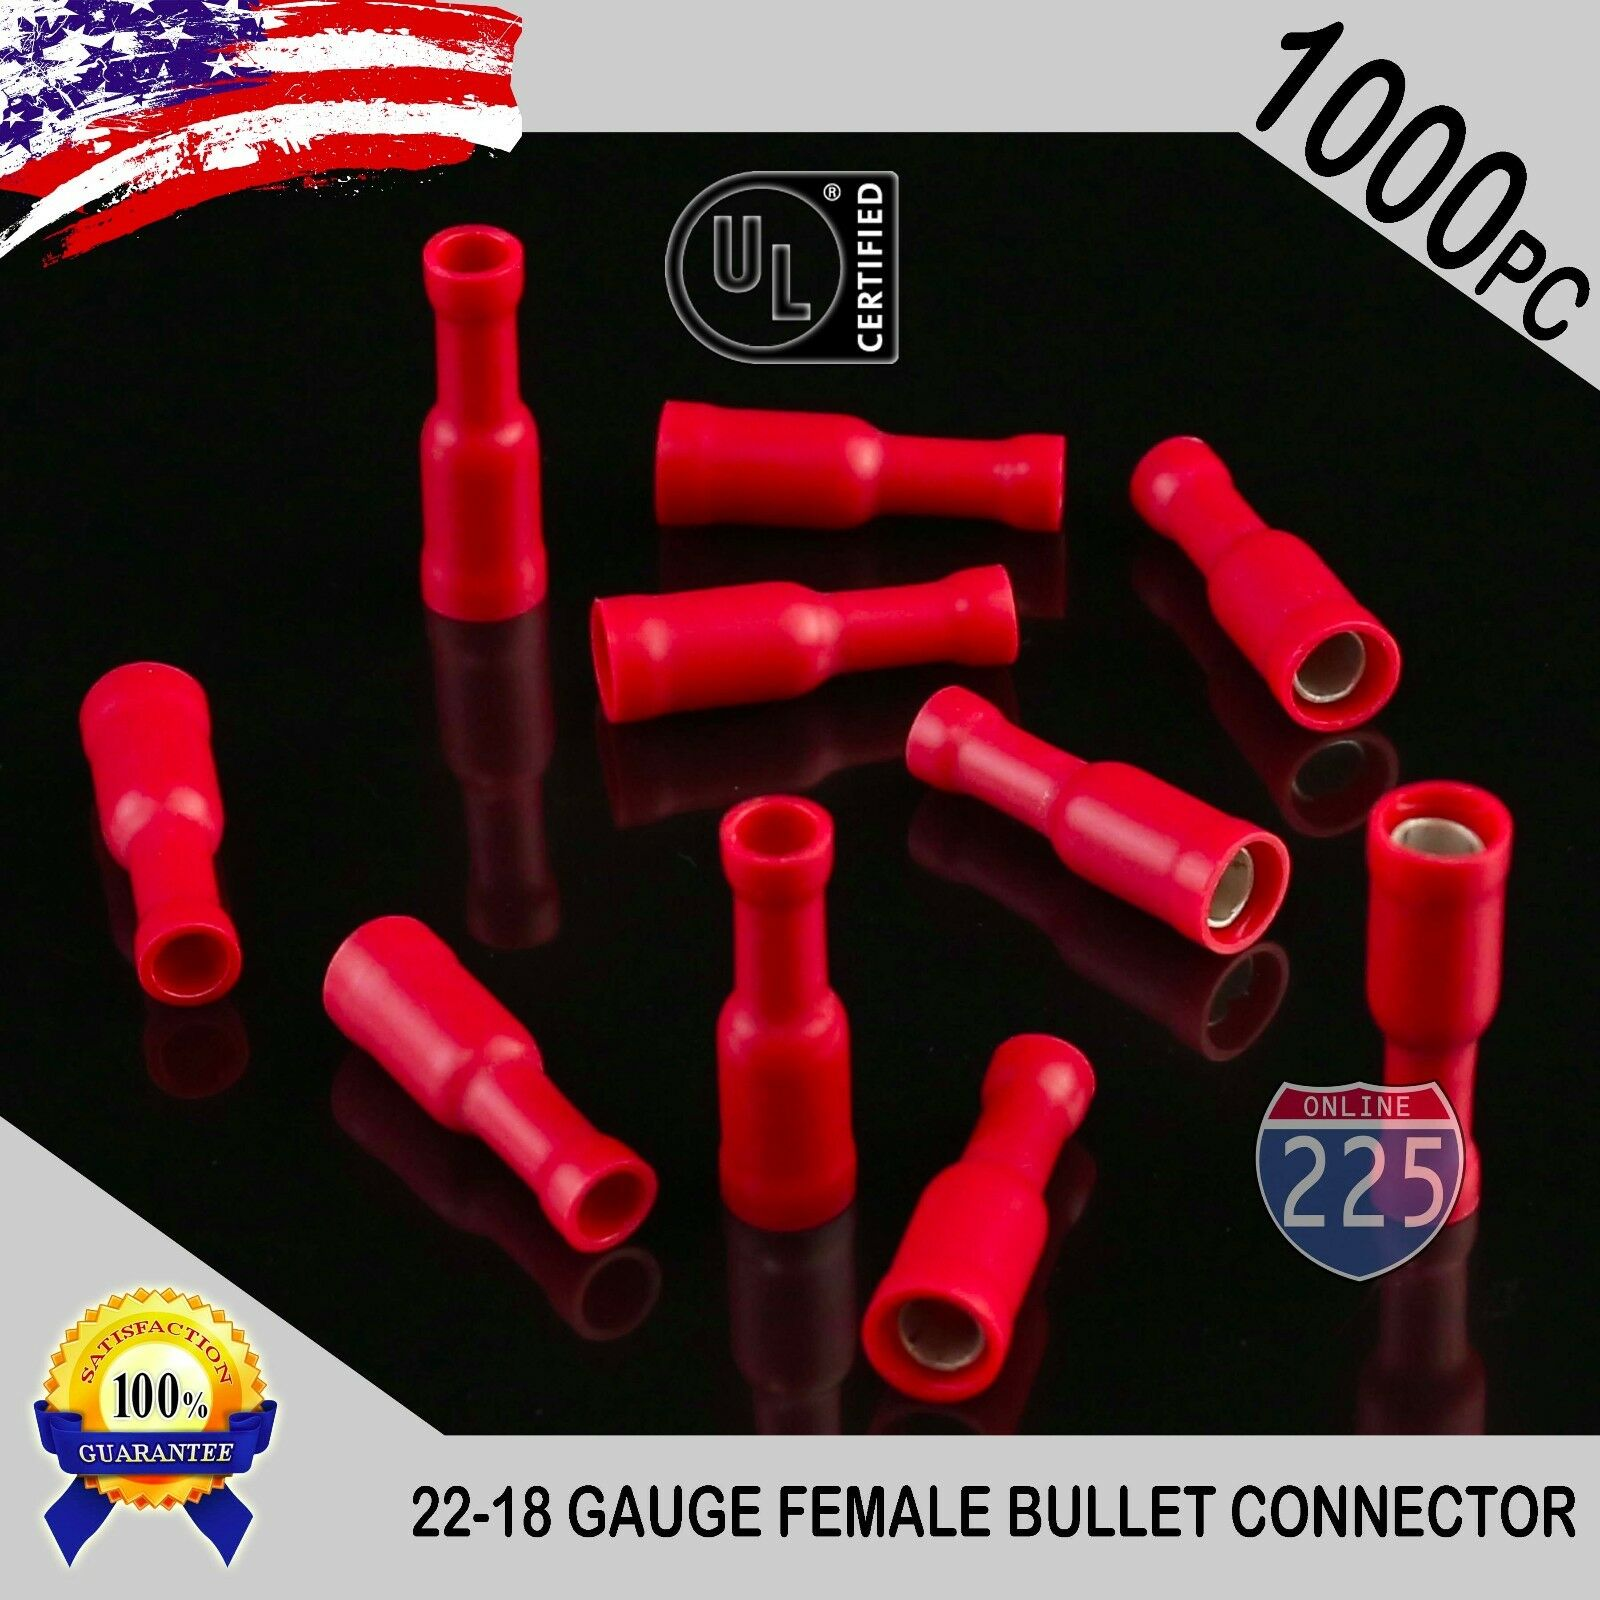 1000 Pack 22-18 Gauge Red Female Bullet Connectors Fully ...